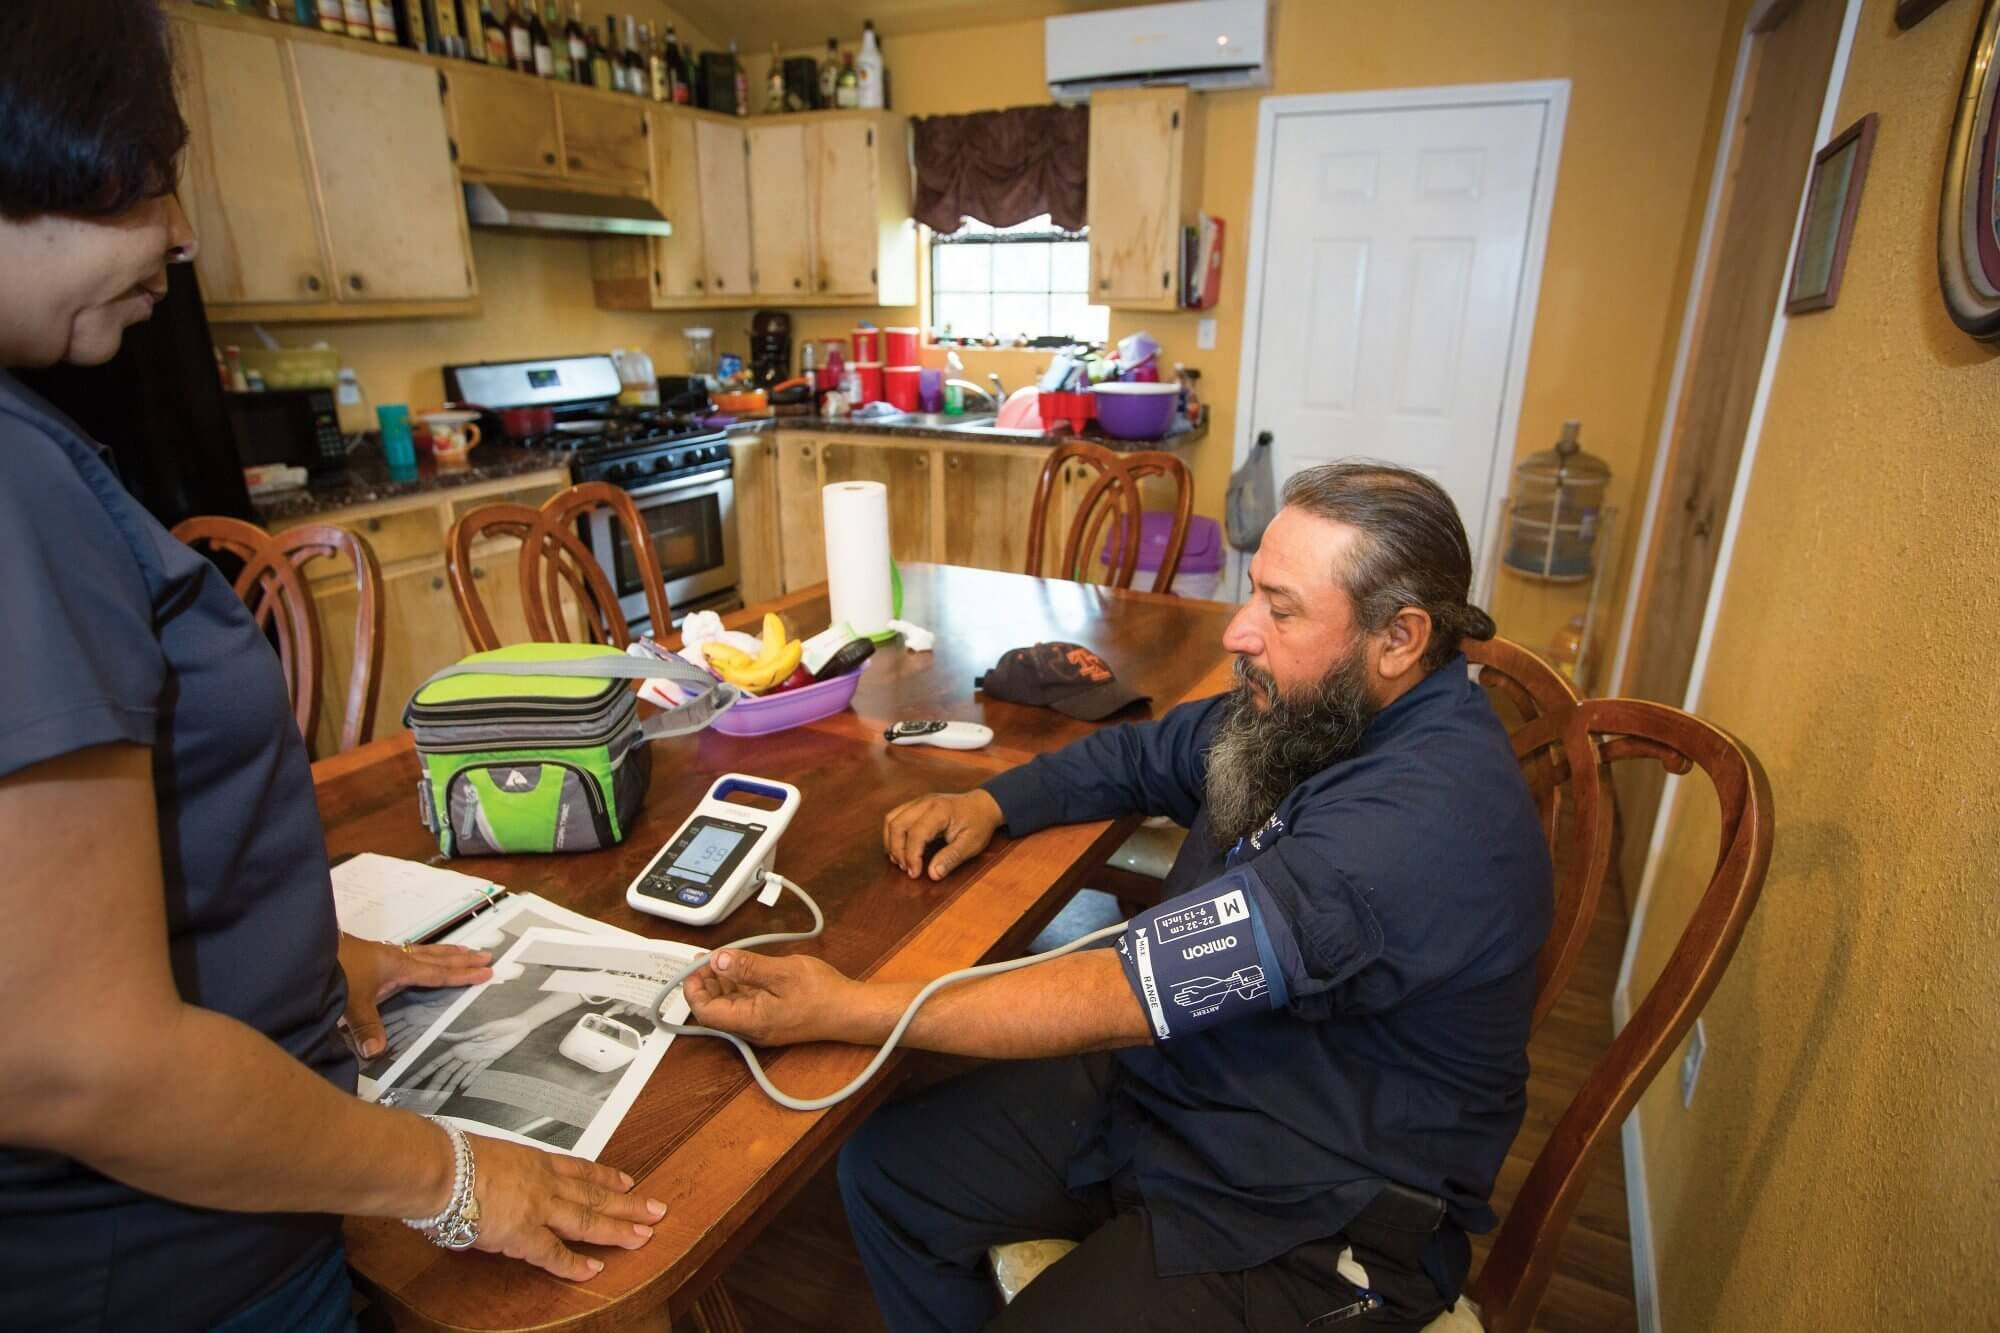 A community health worker measures Francisco Garza's blood pressure in his kitchen in San Benito, Texas.